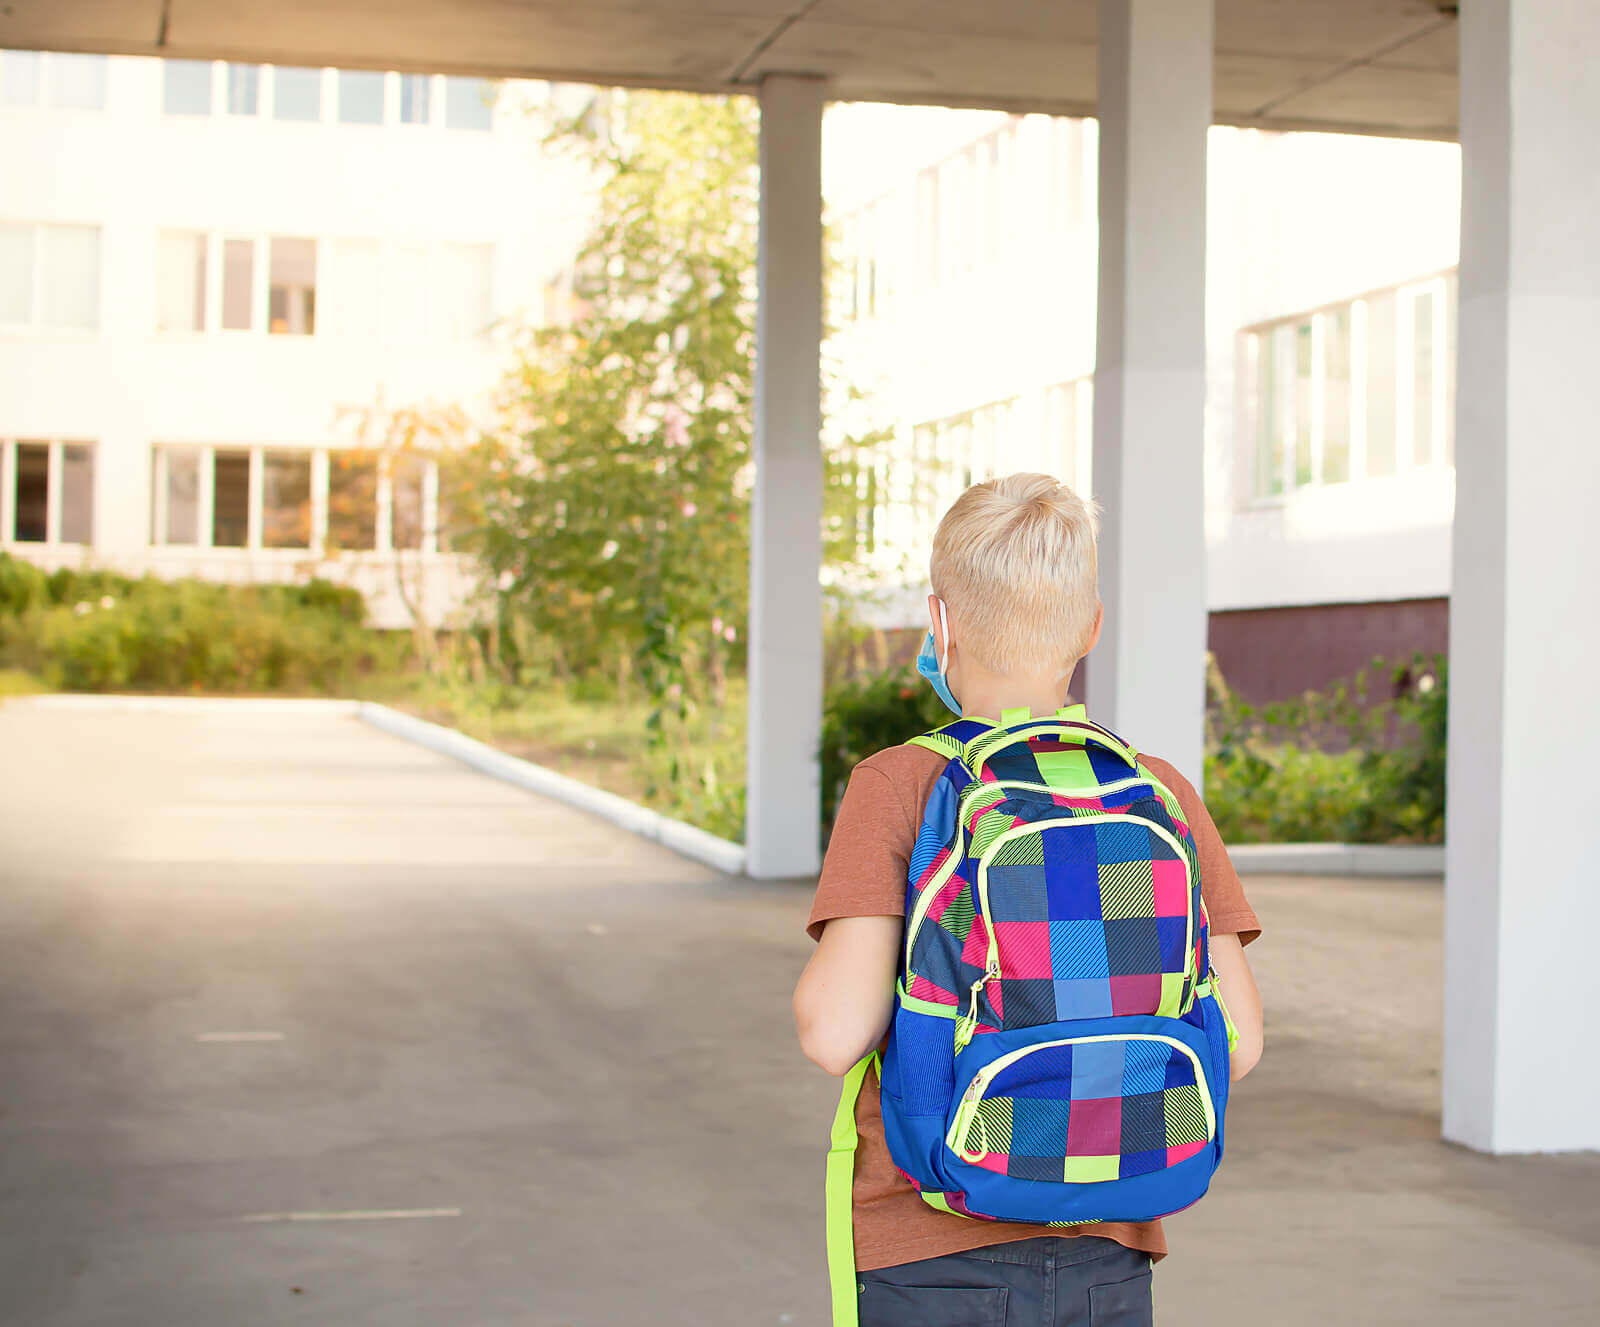 A child walking into a new school.